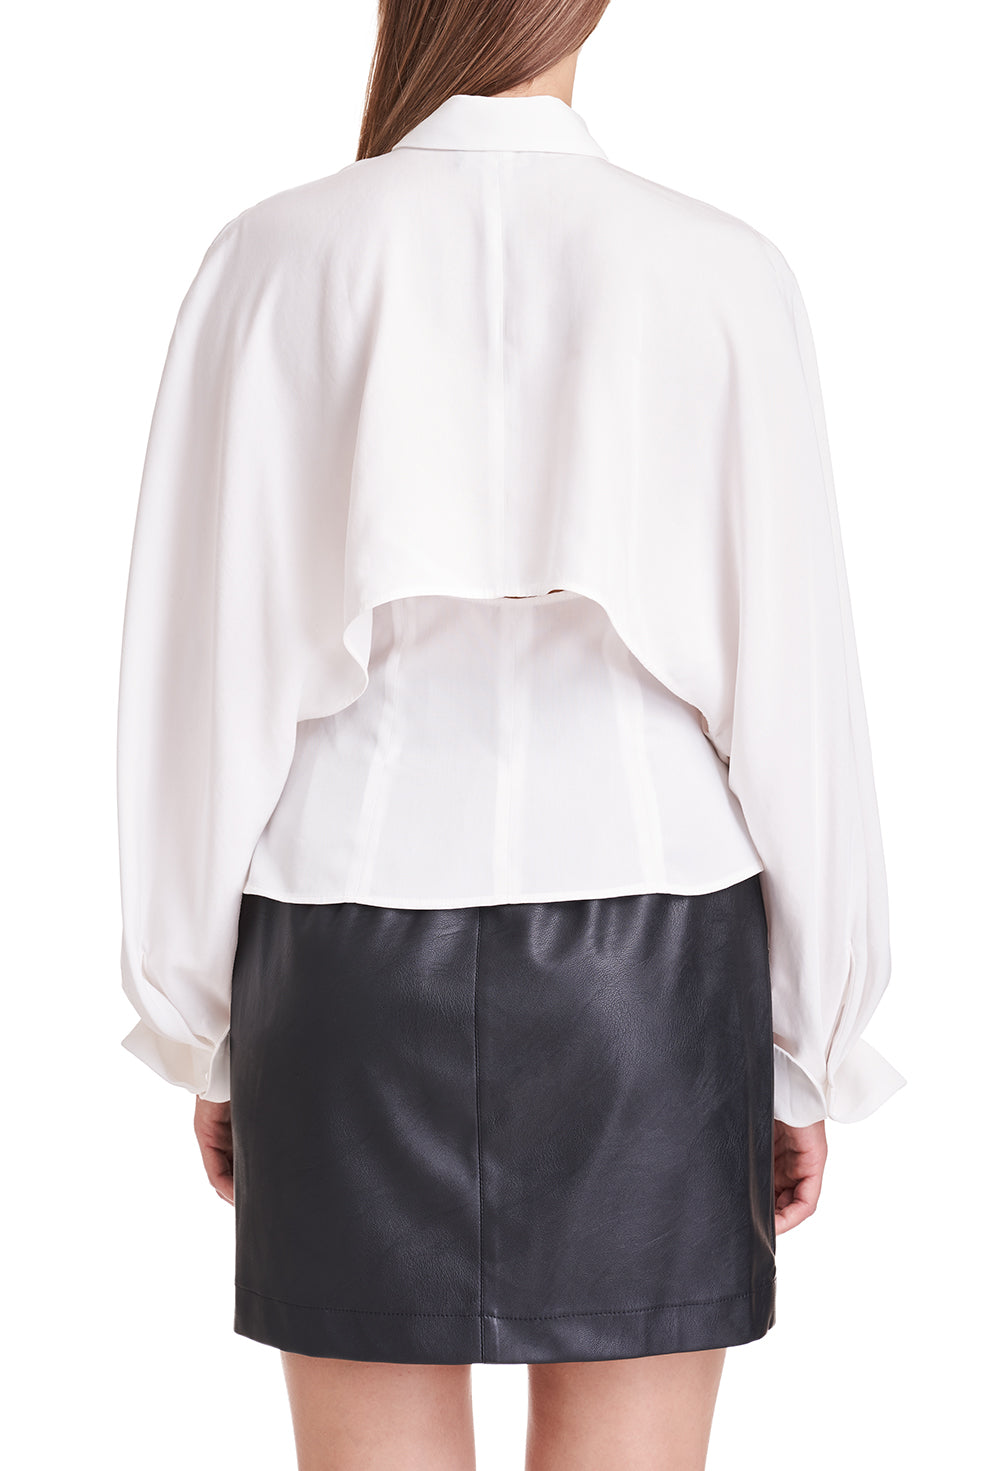 Danna White Cape Sleeve Shirt